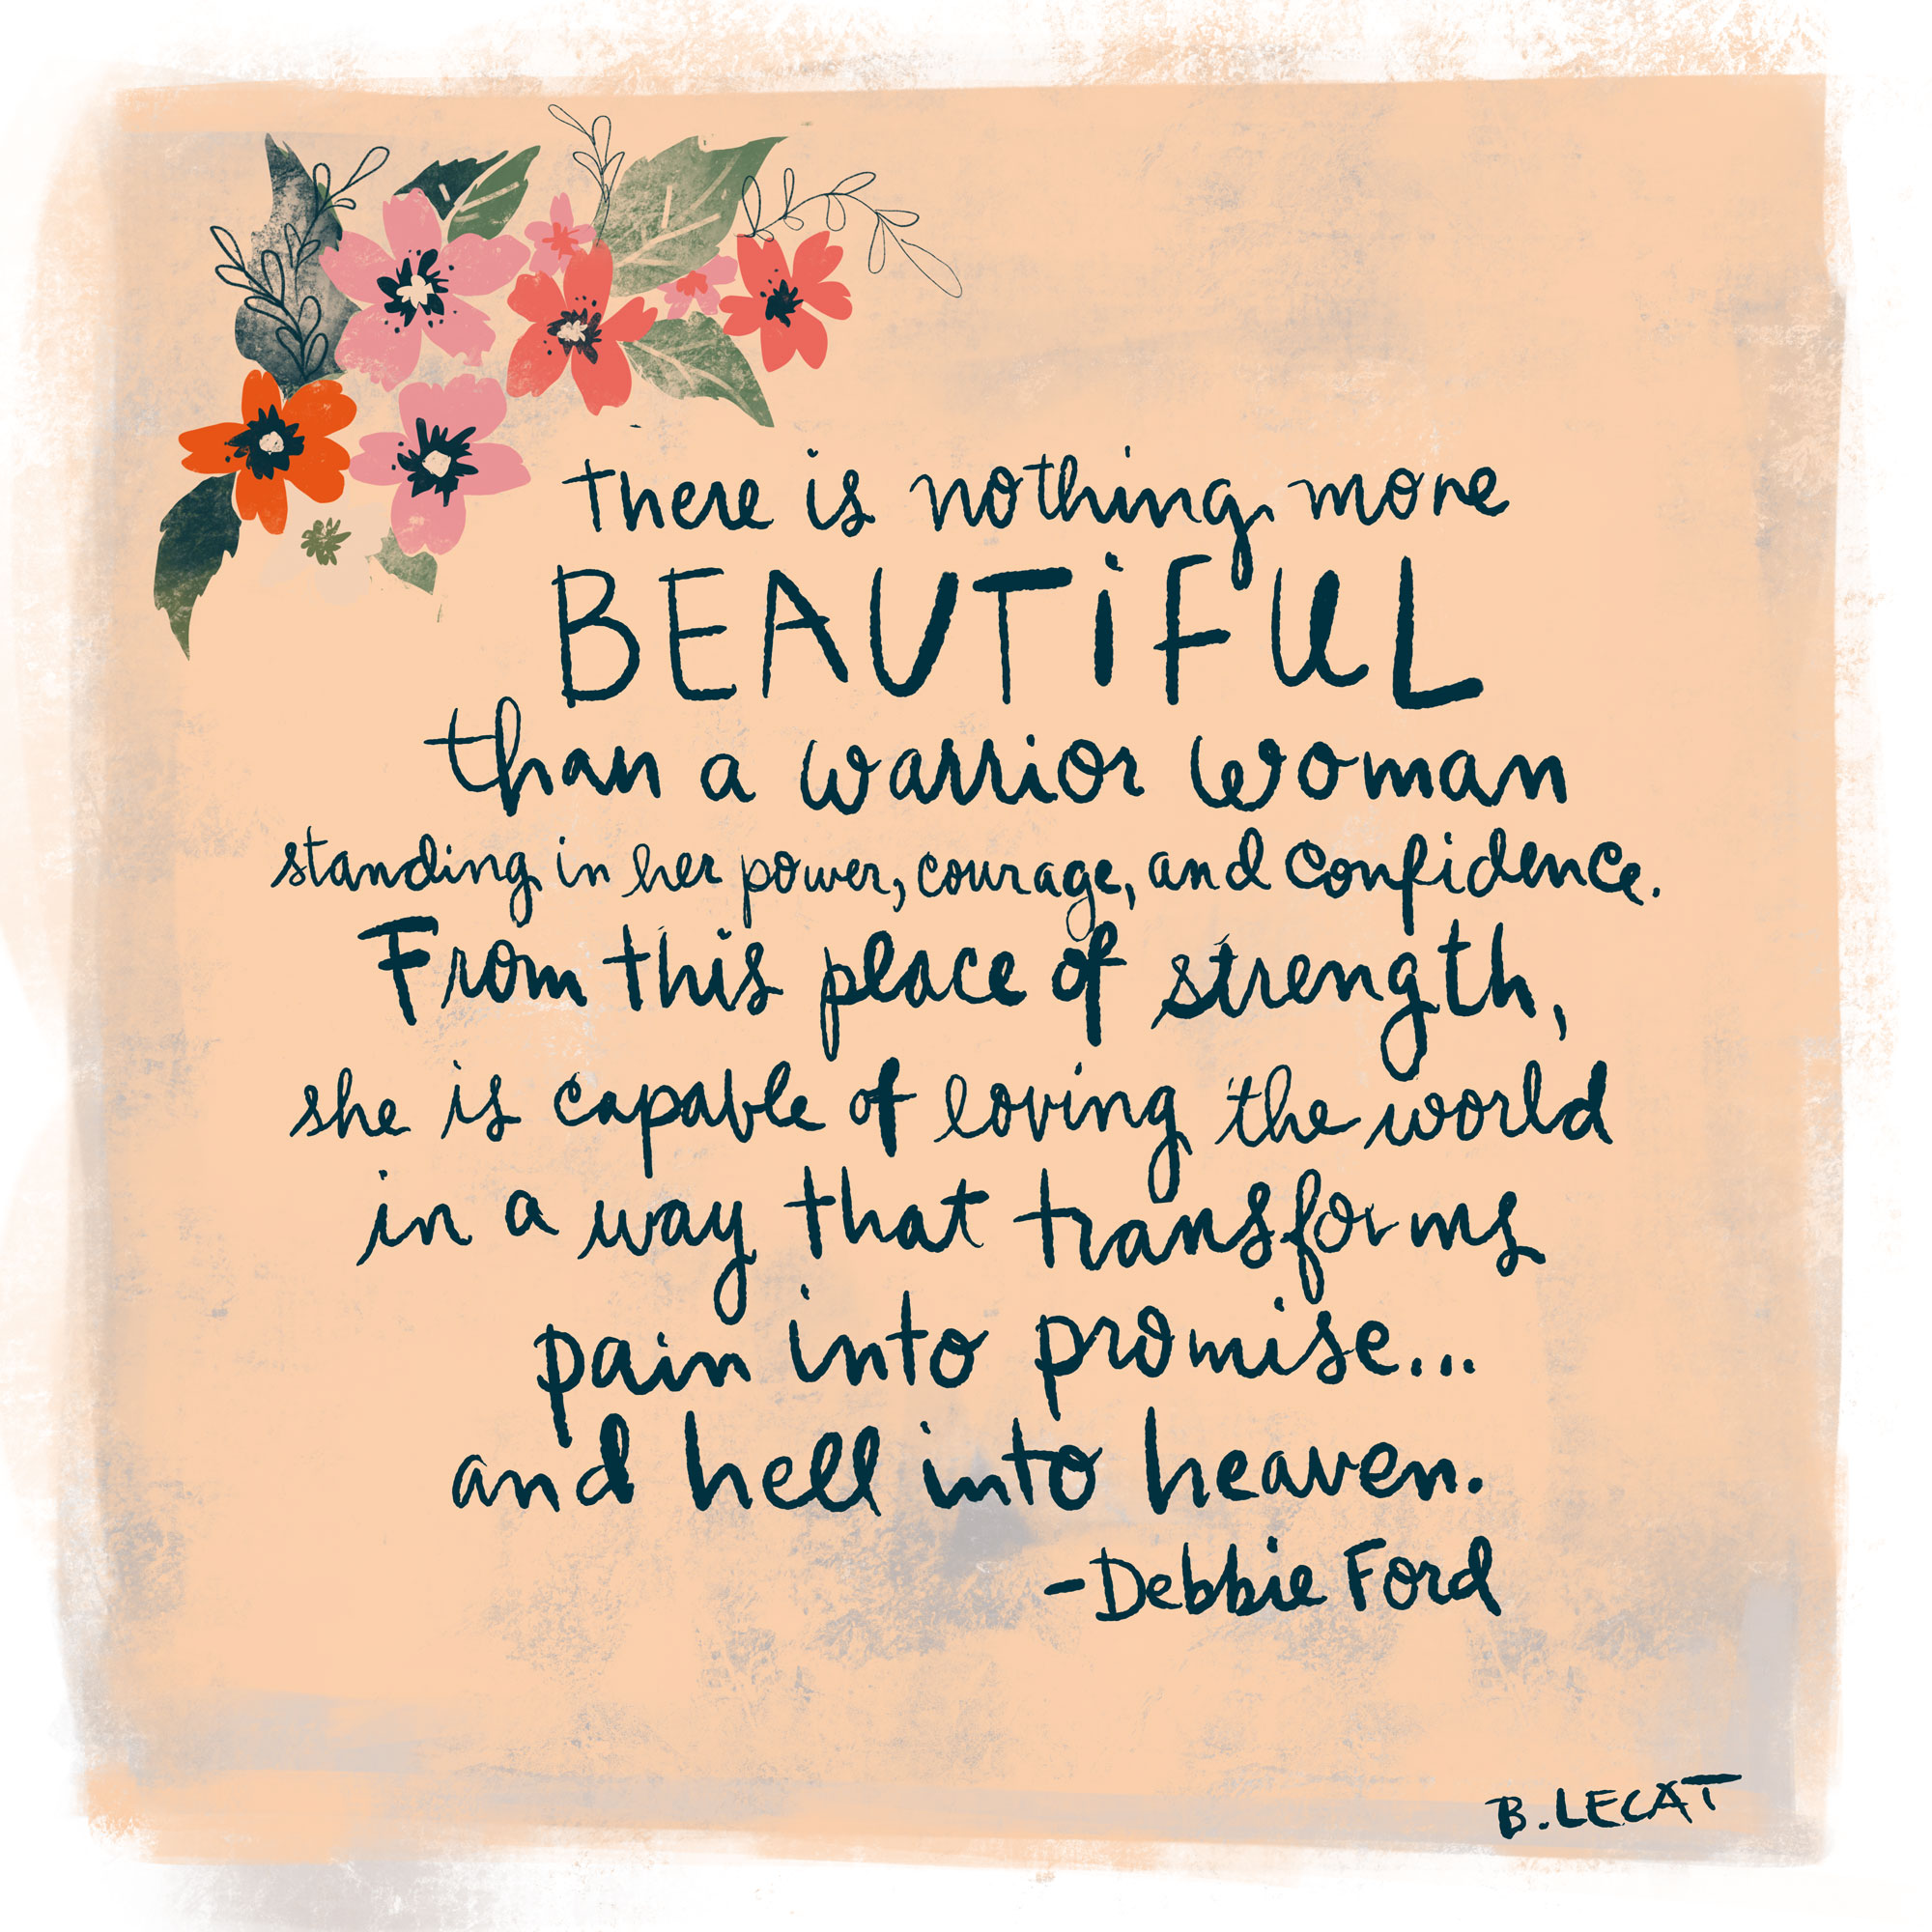 Strong beautiful women quote illustration by Bonnie Lecat